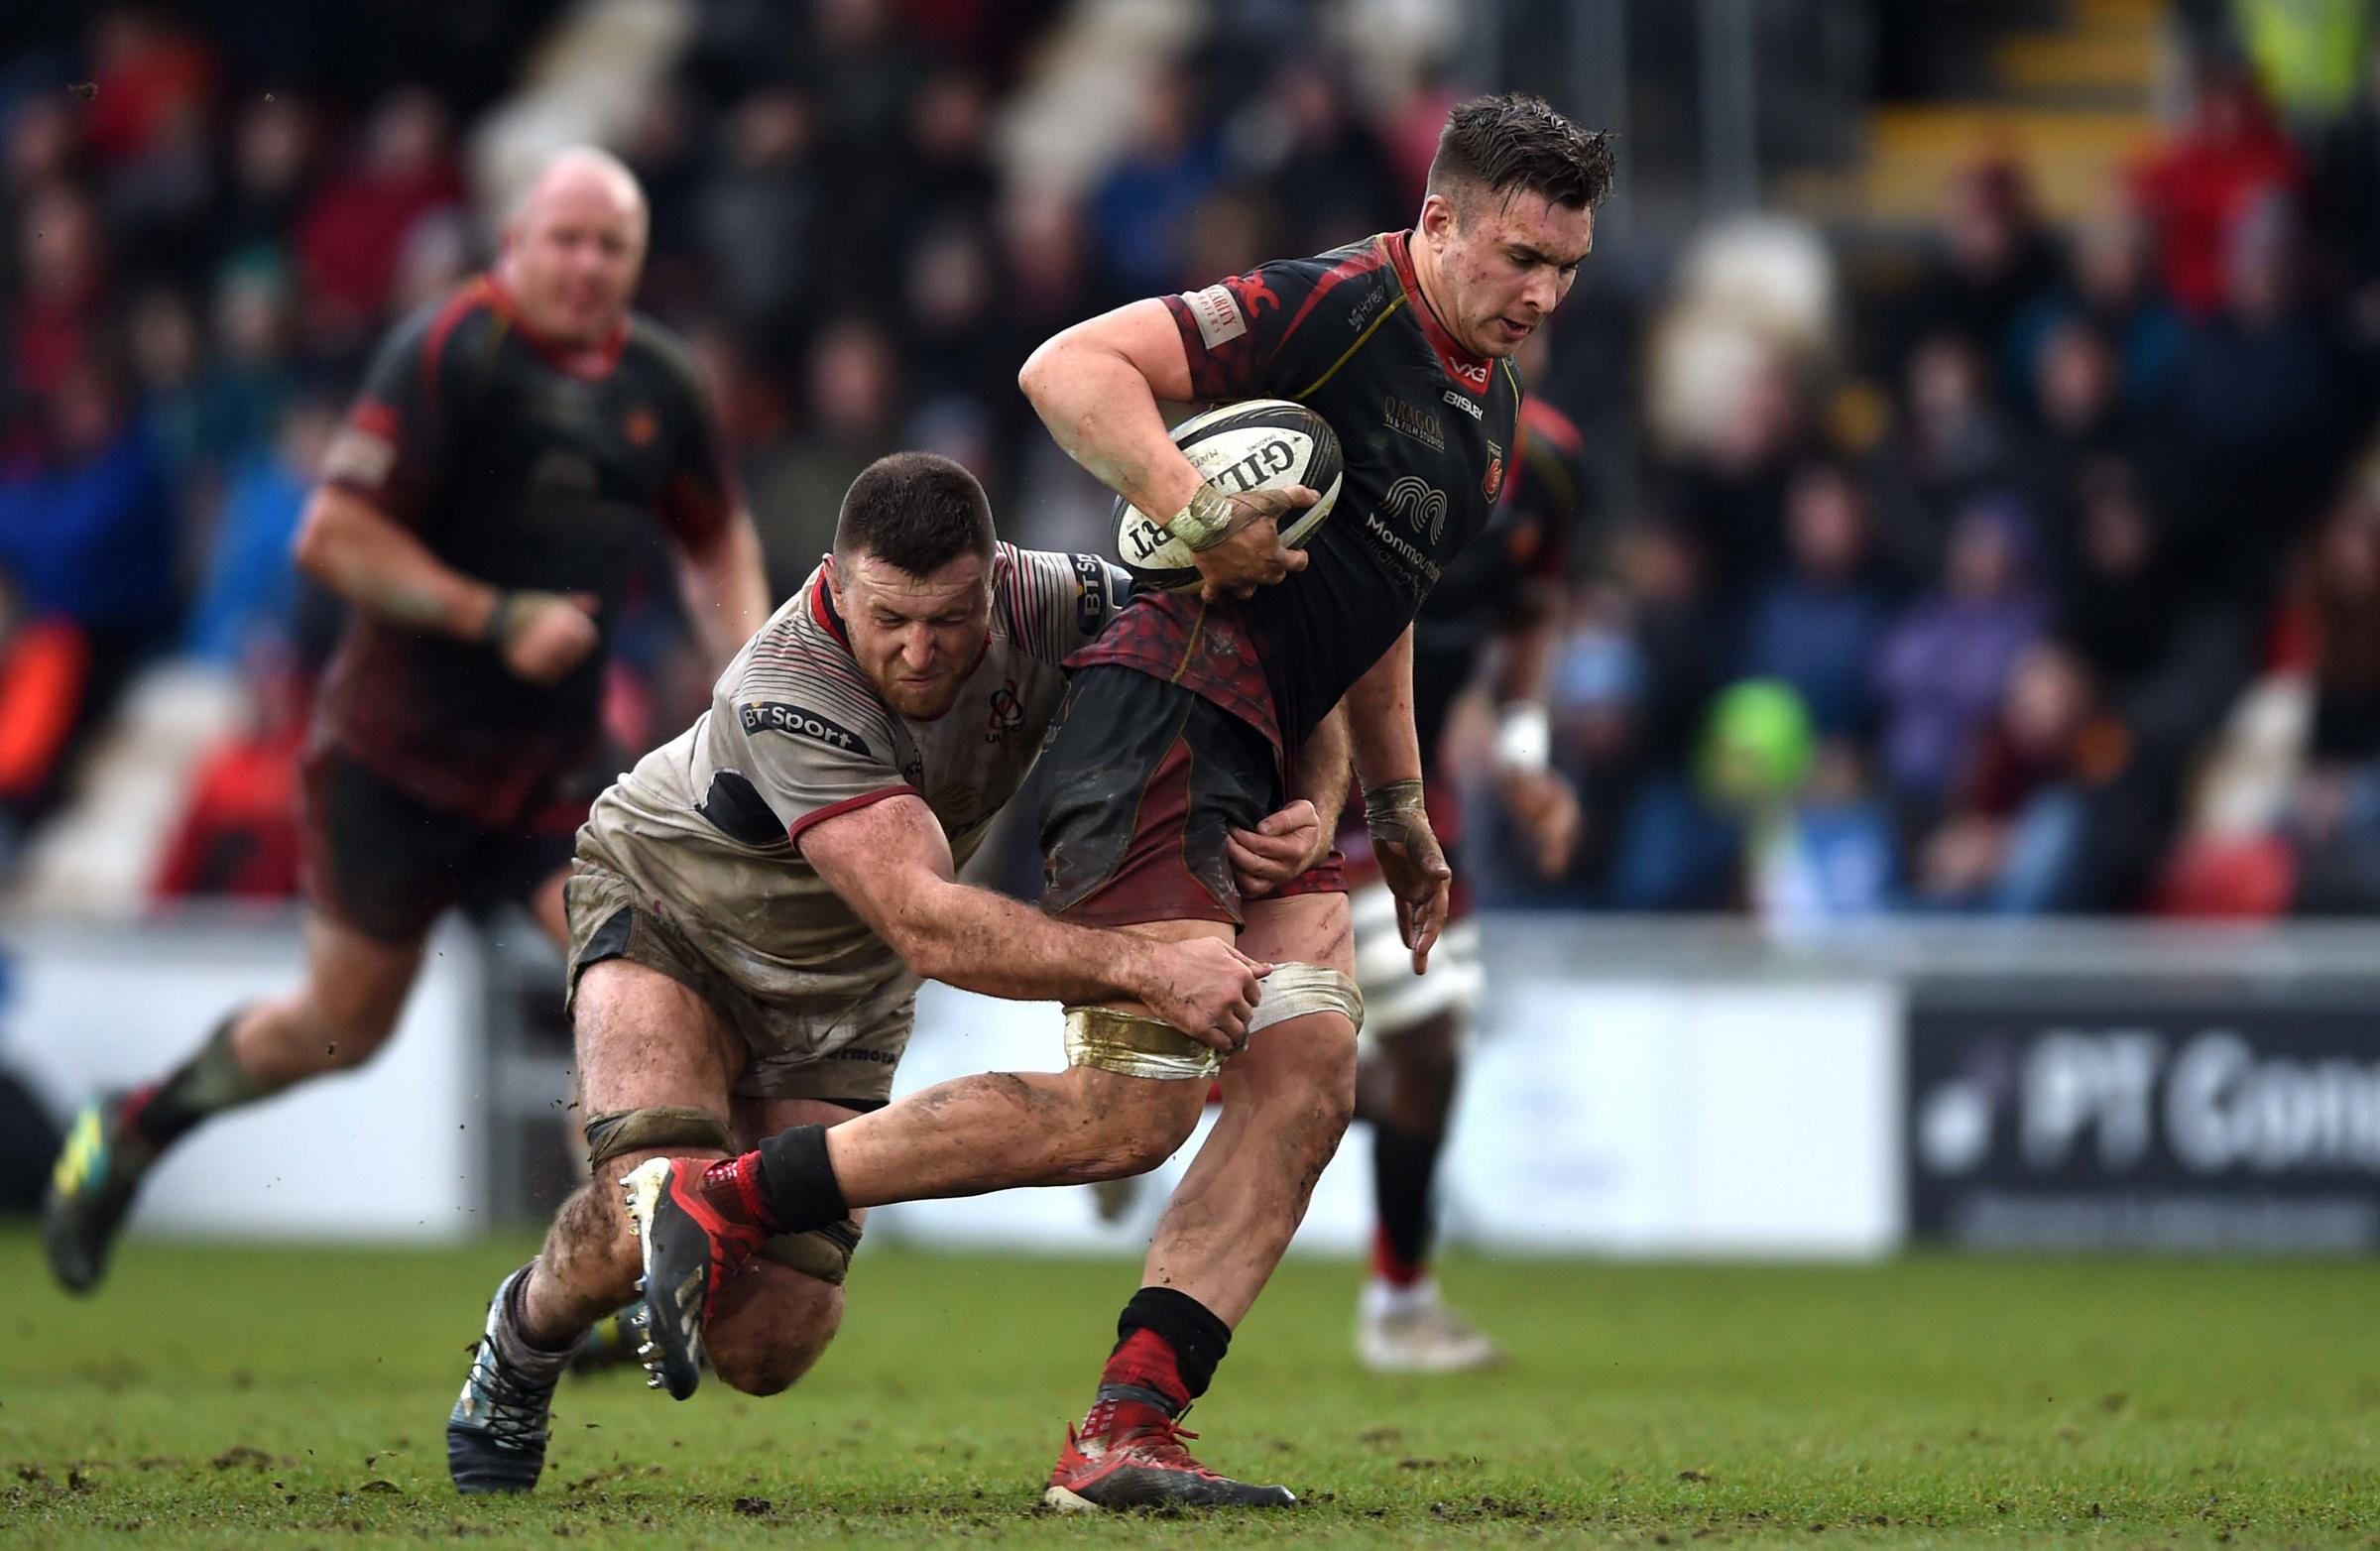 ON THE RUN: Dragons back row forward Taine Basham carrying hard against Ulster